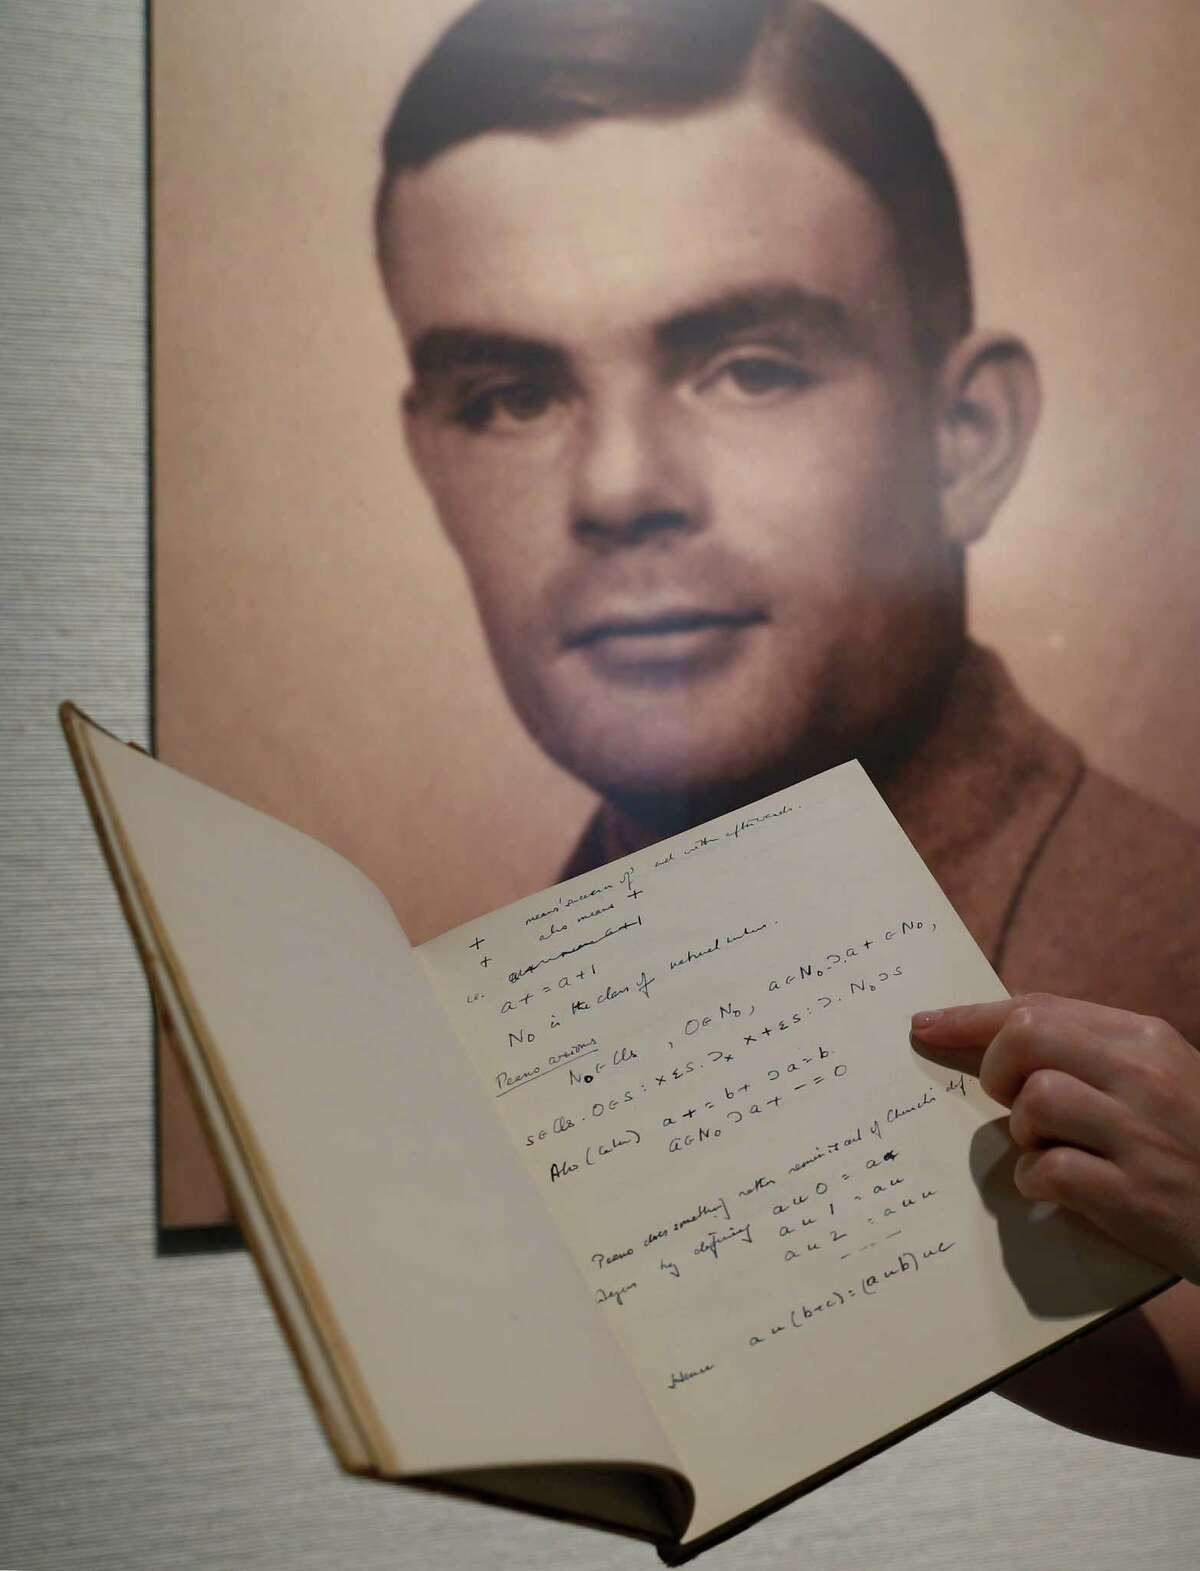 FILE - In this March 19, 2015 file photo, a page from the notebook of Alan Turing, the World War II code-breaking genius, is displayed in front of his portrait at an auction preview in Hong Kong. Turing, who was convicted of indecency in 1952 for being gay and later killed himself, was awarded a posthumous royal pardon in 2013. Britain's government announced Thursday, Oct. 20, 2016, that it will posthumously pardon thousands of gay and bisexual men convicted under the long-repealed anti-gay laws. (AP Photo/Kin Cheung, File)